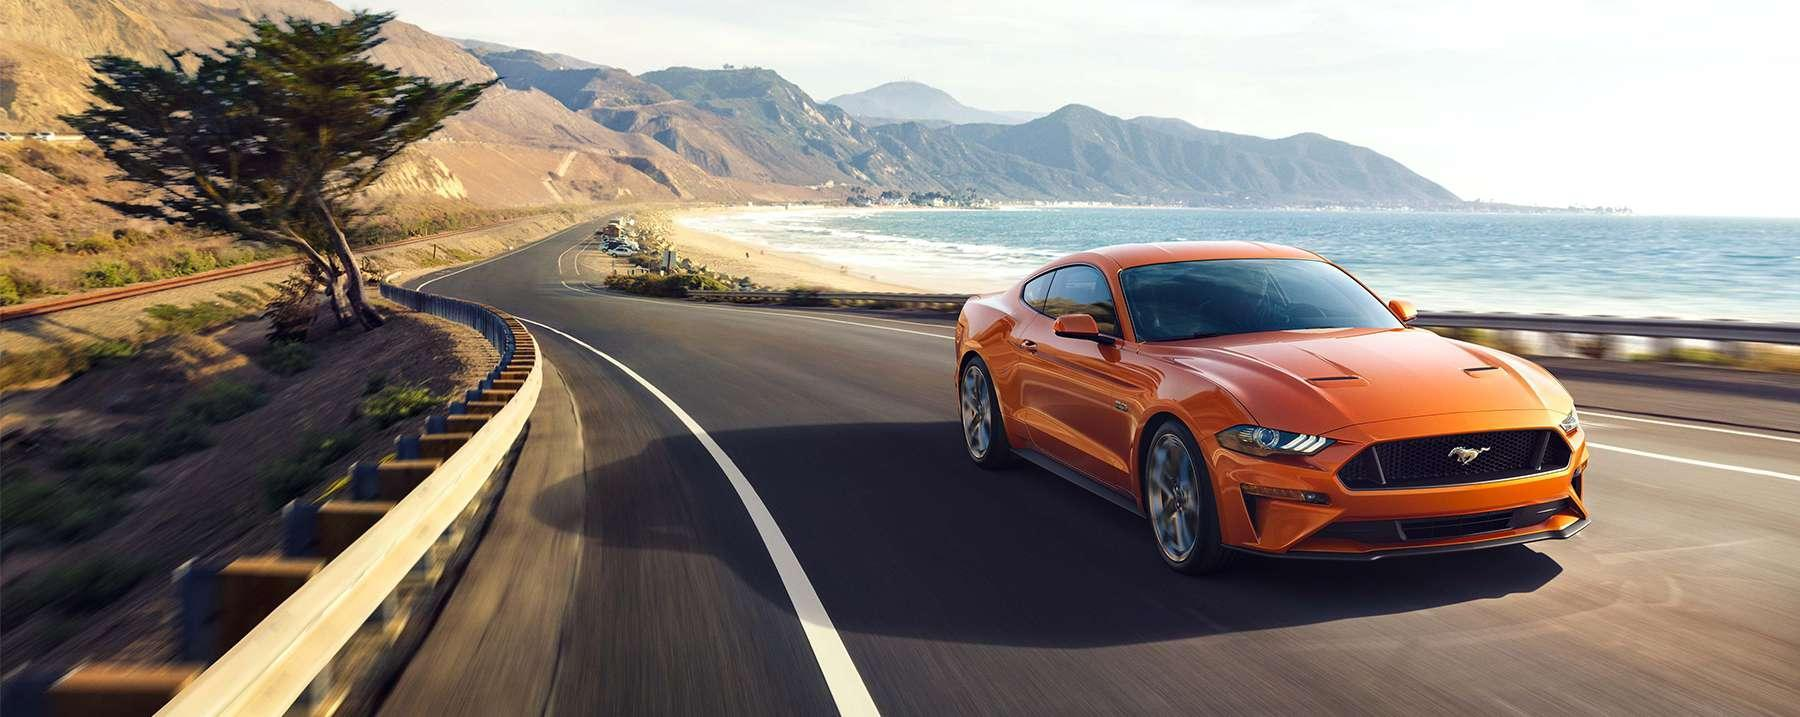 2018 Ford Mustang Model Page Overview